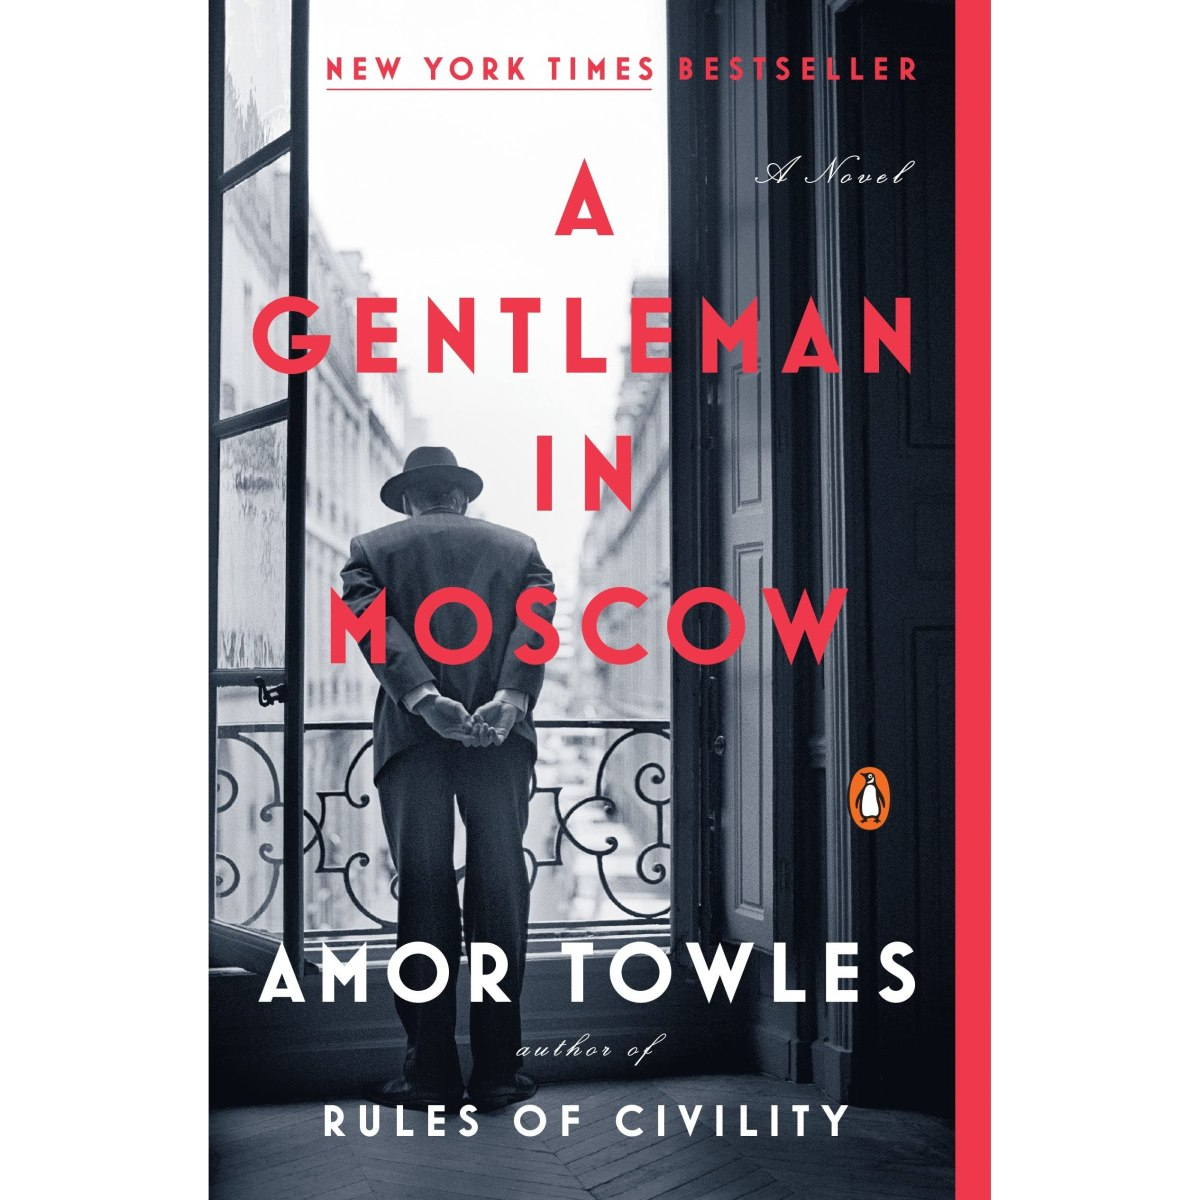 A Gentleman inMoscow